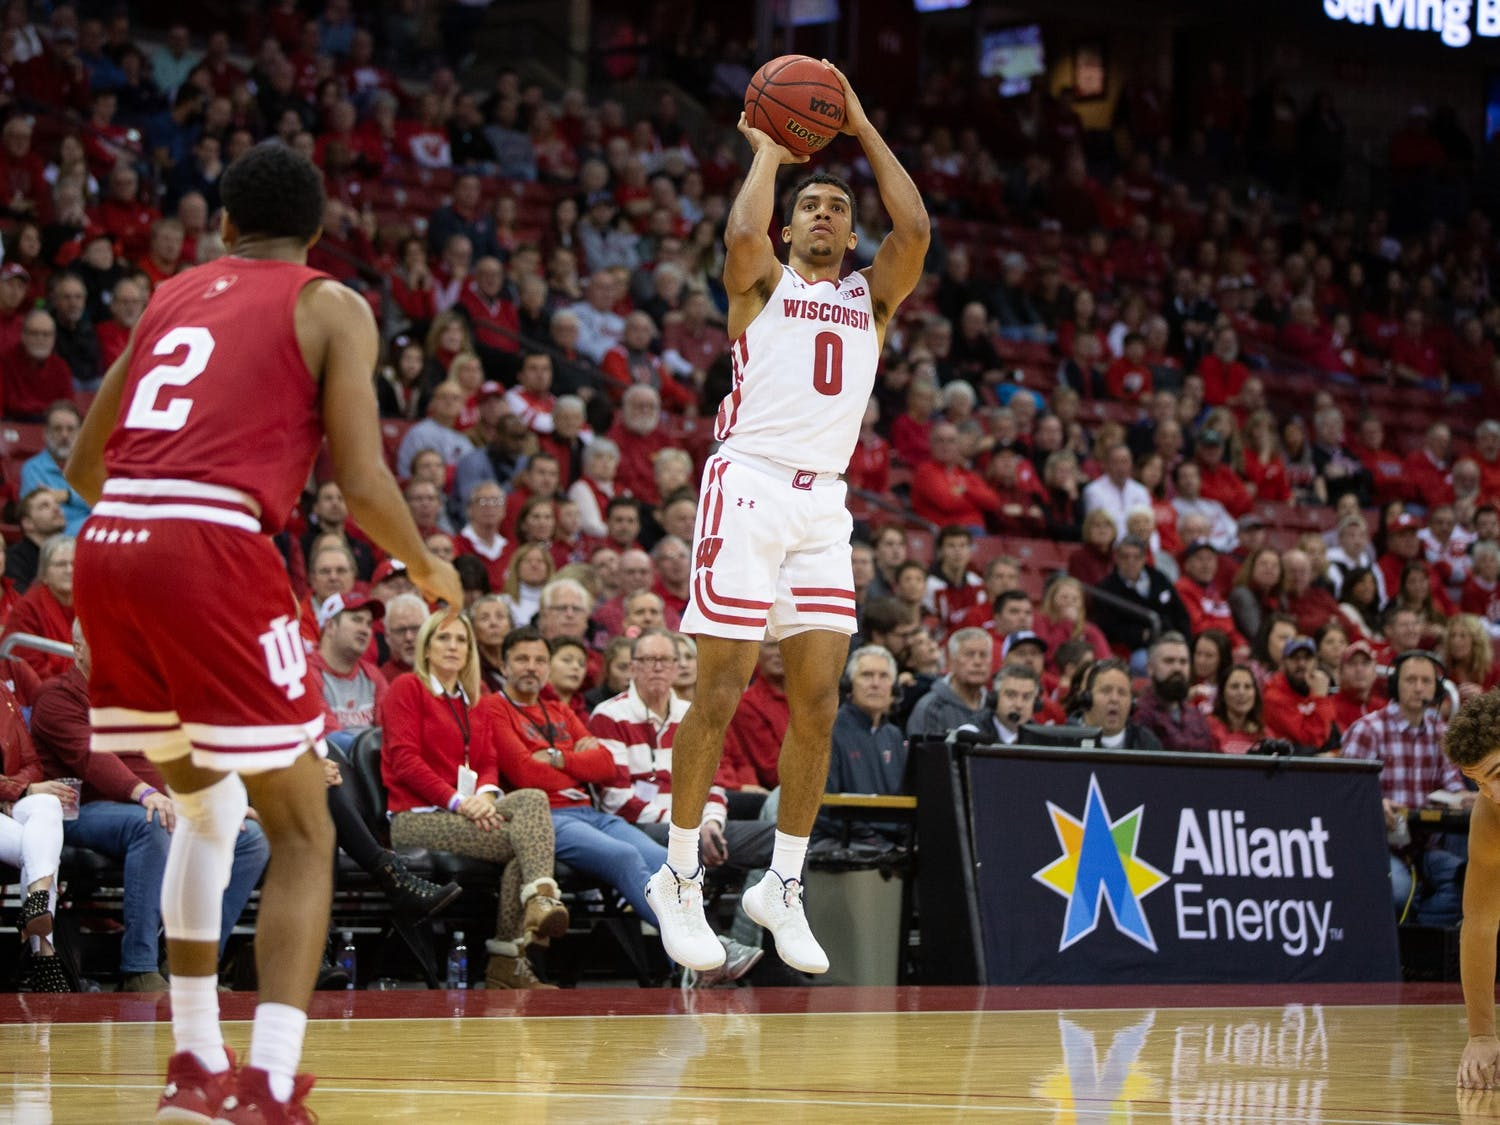 D'Mitrik Trice scored 11 Wednesday, providing a spark in the second half for the Badgers.